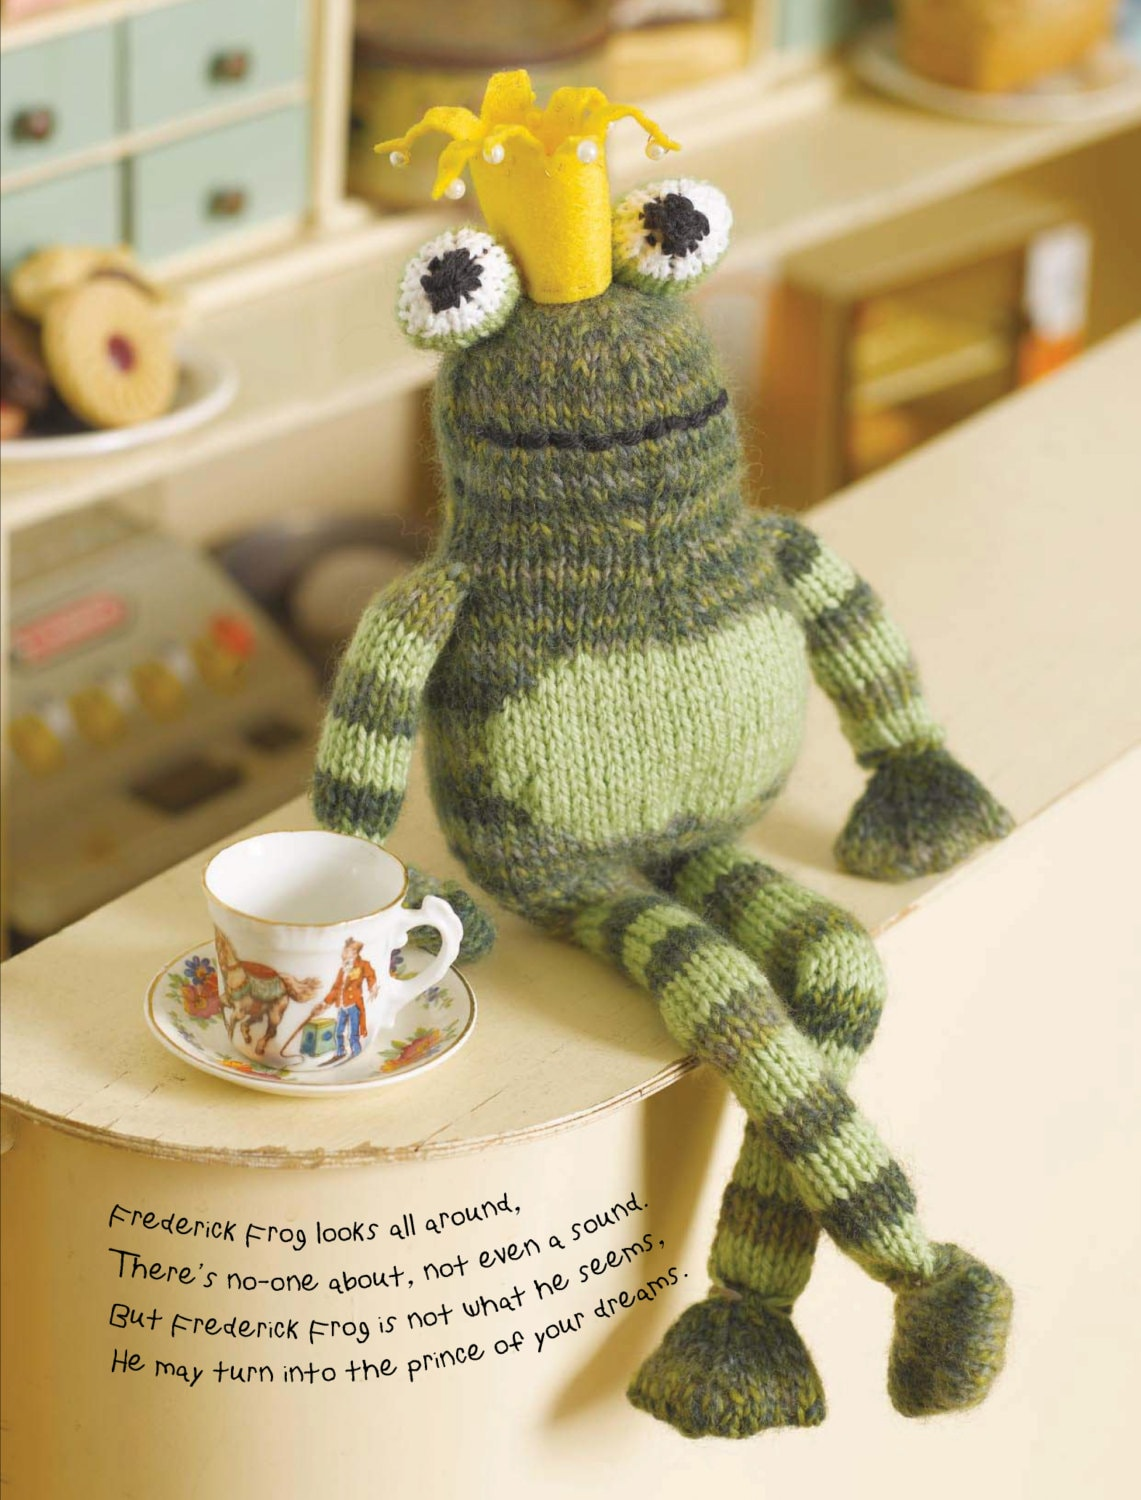 Frederick the Frog Prince Toy Knitting Pattern Download